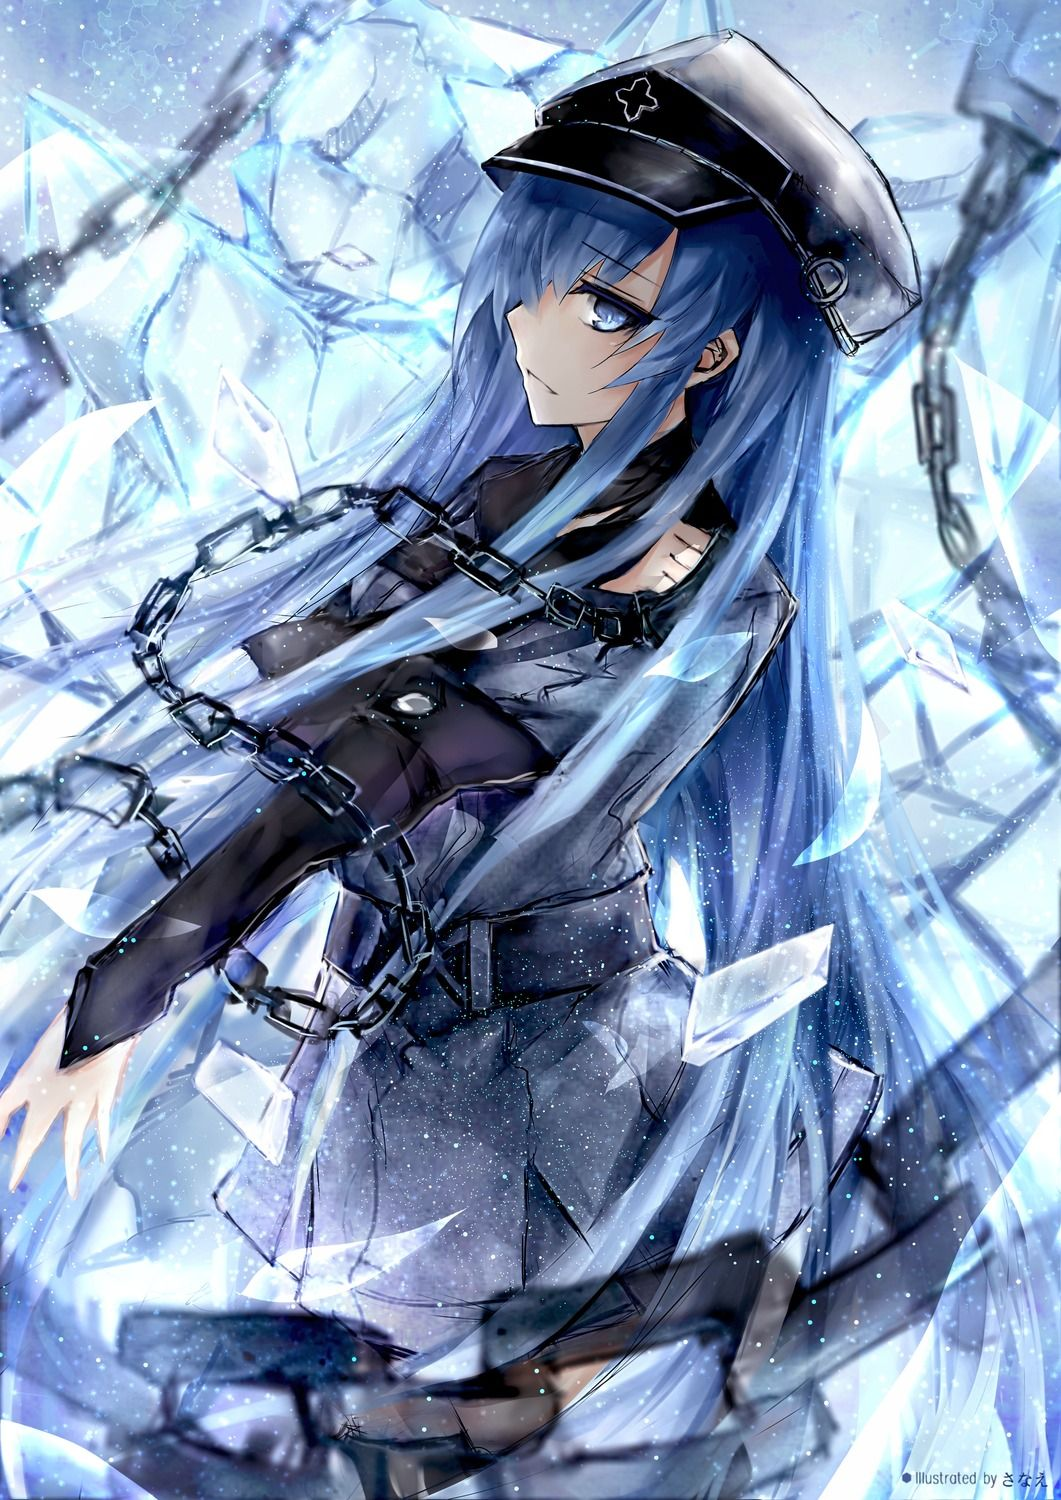 Free Download Akame Ga Kill Esdeath Awesome Wallpaper Anime